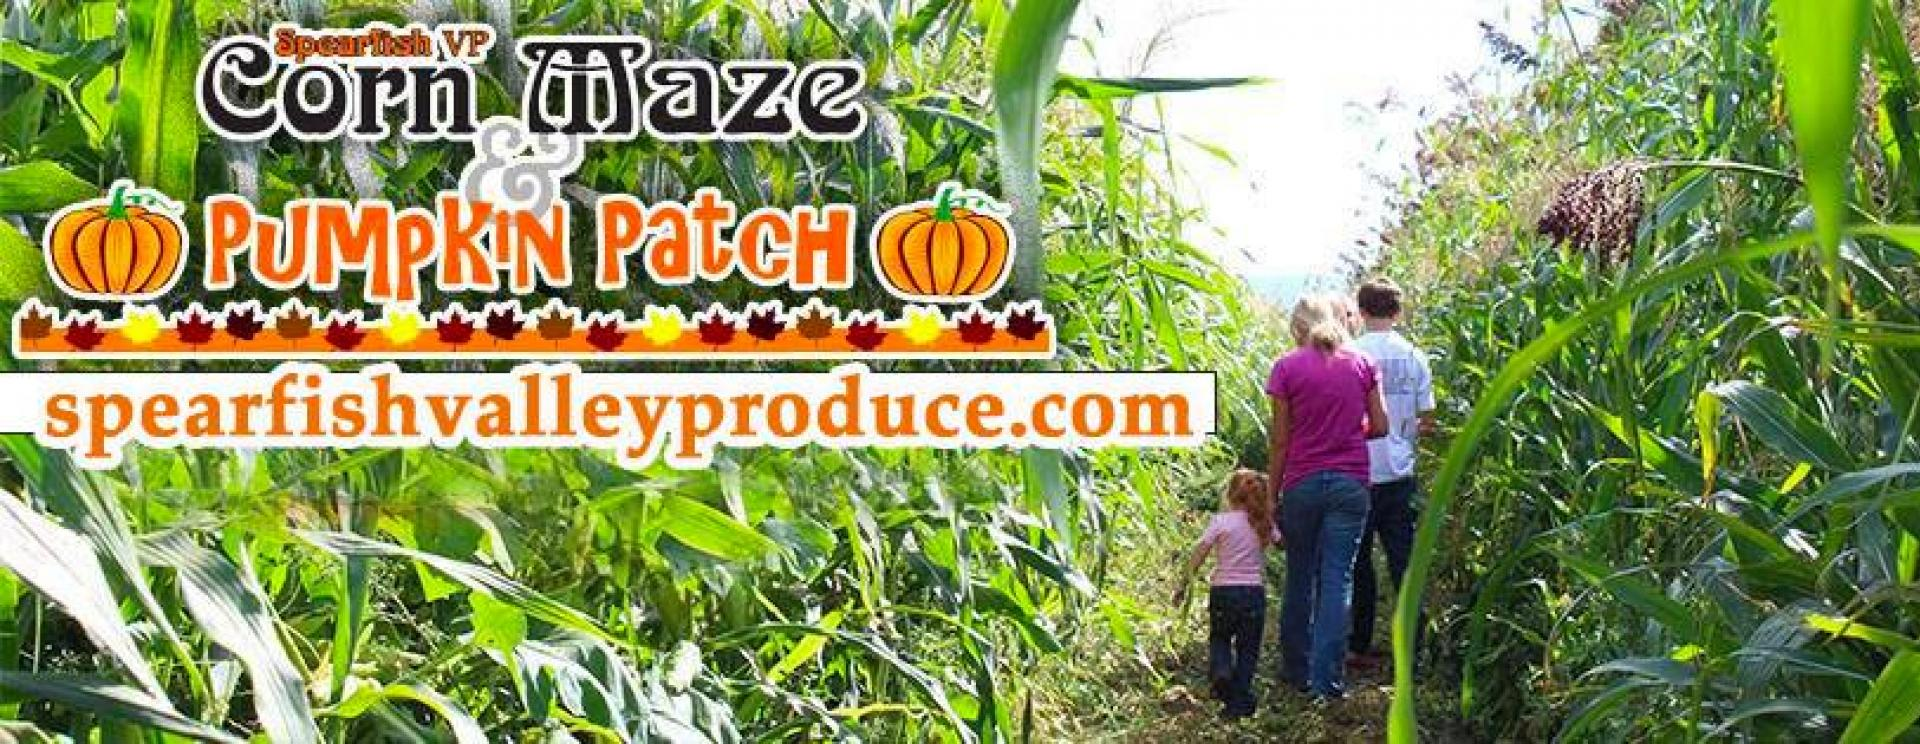 Spearfish Corn Maze and Pumpkin Patch